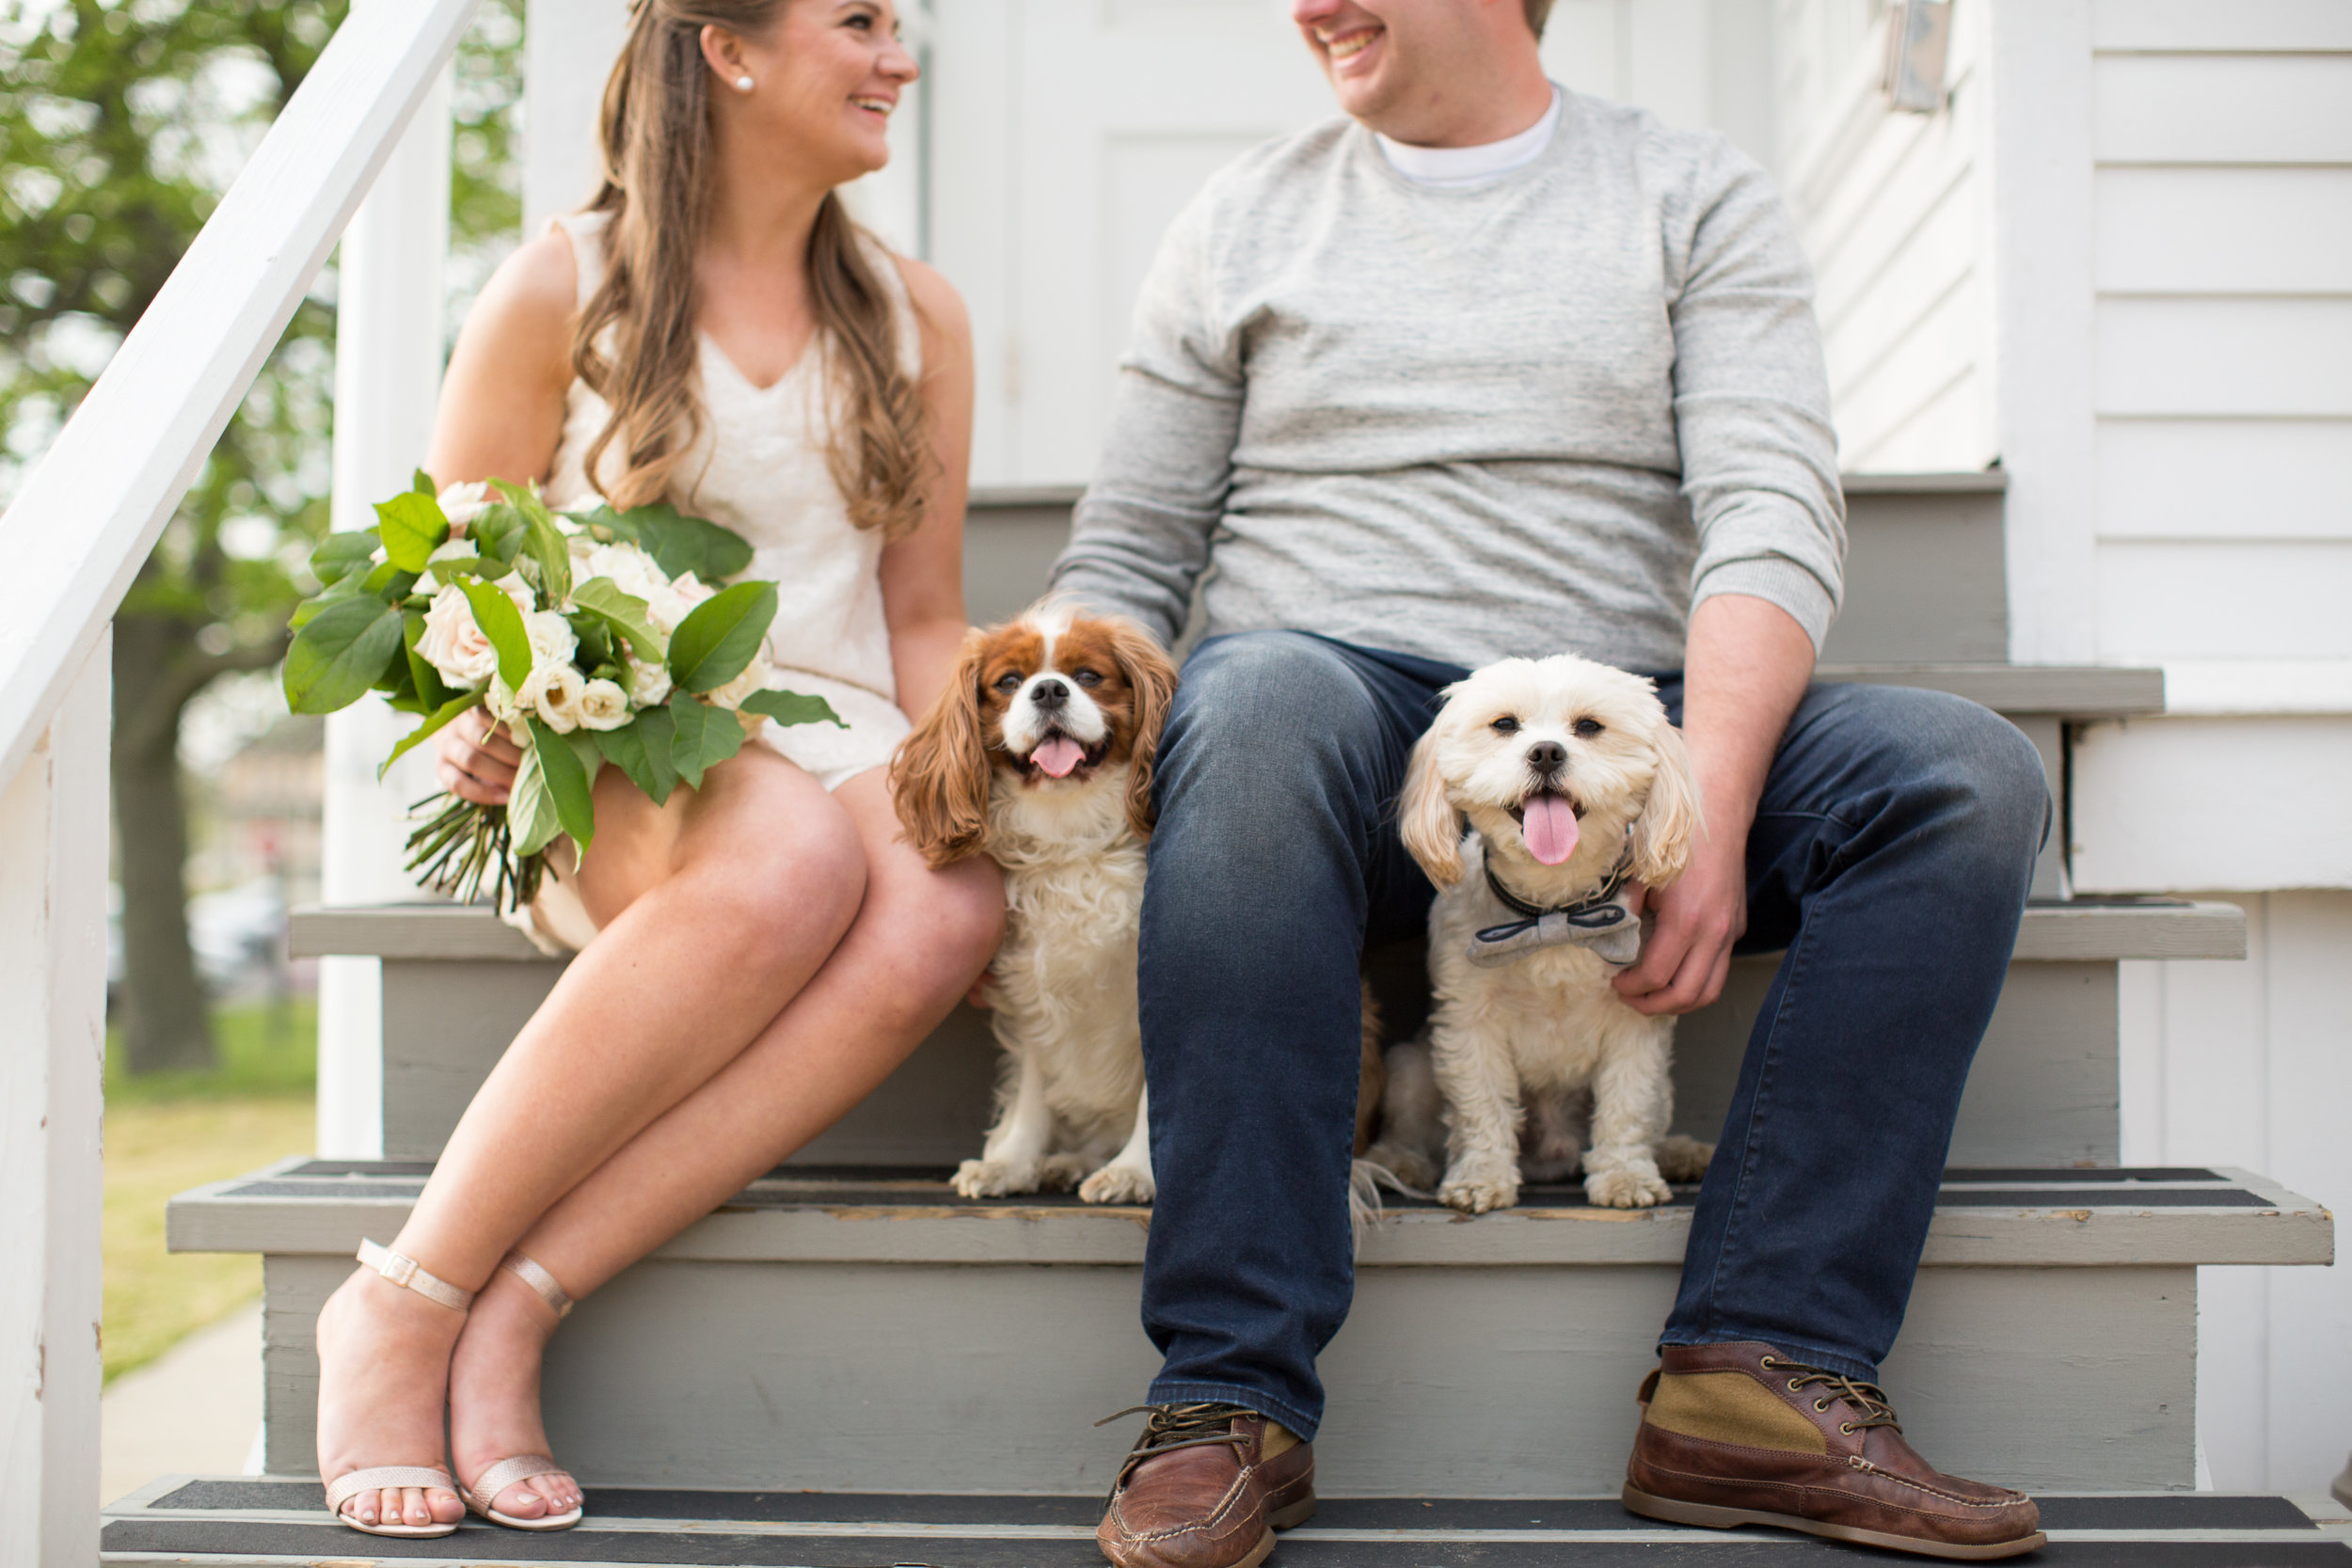 Sandy Hook New Jersey Beach Engagement Session with Magnolia West and Jaye Kogut Photography at Light House with Dogs